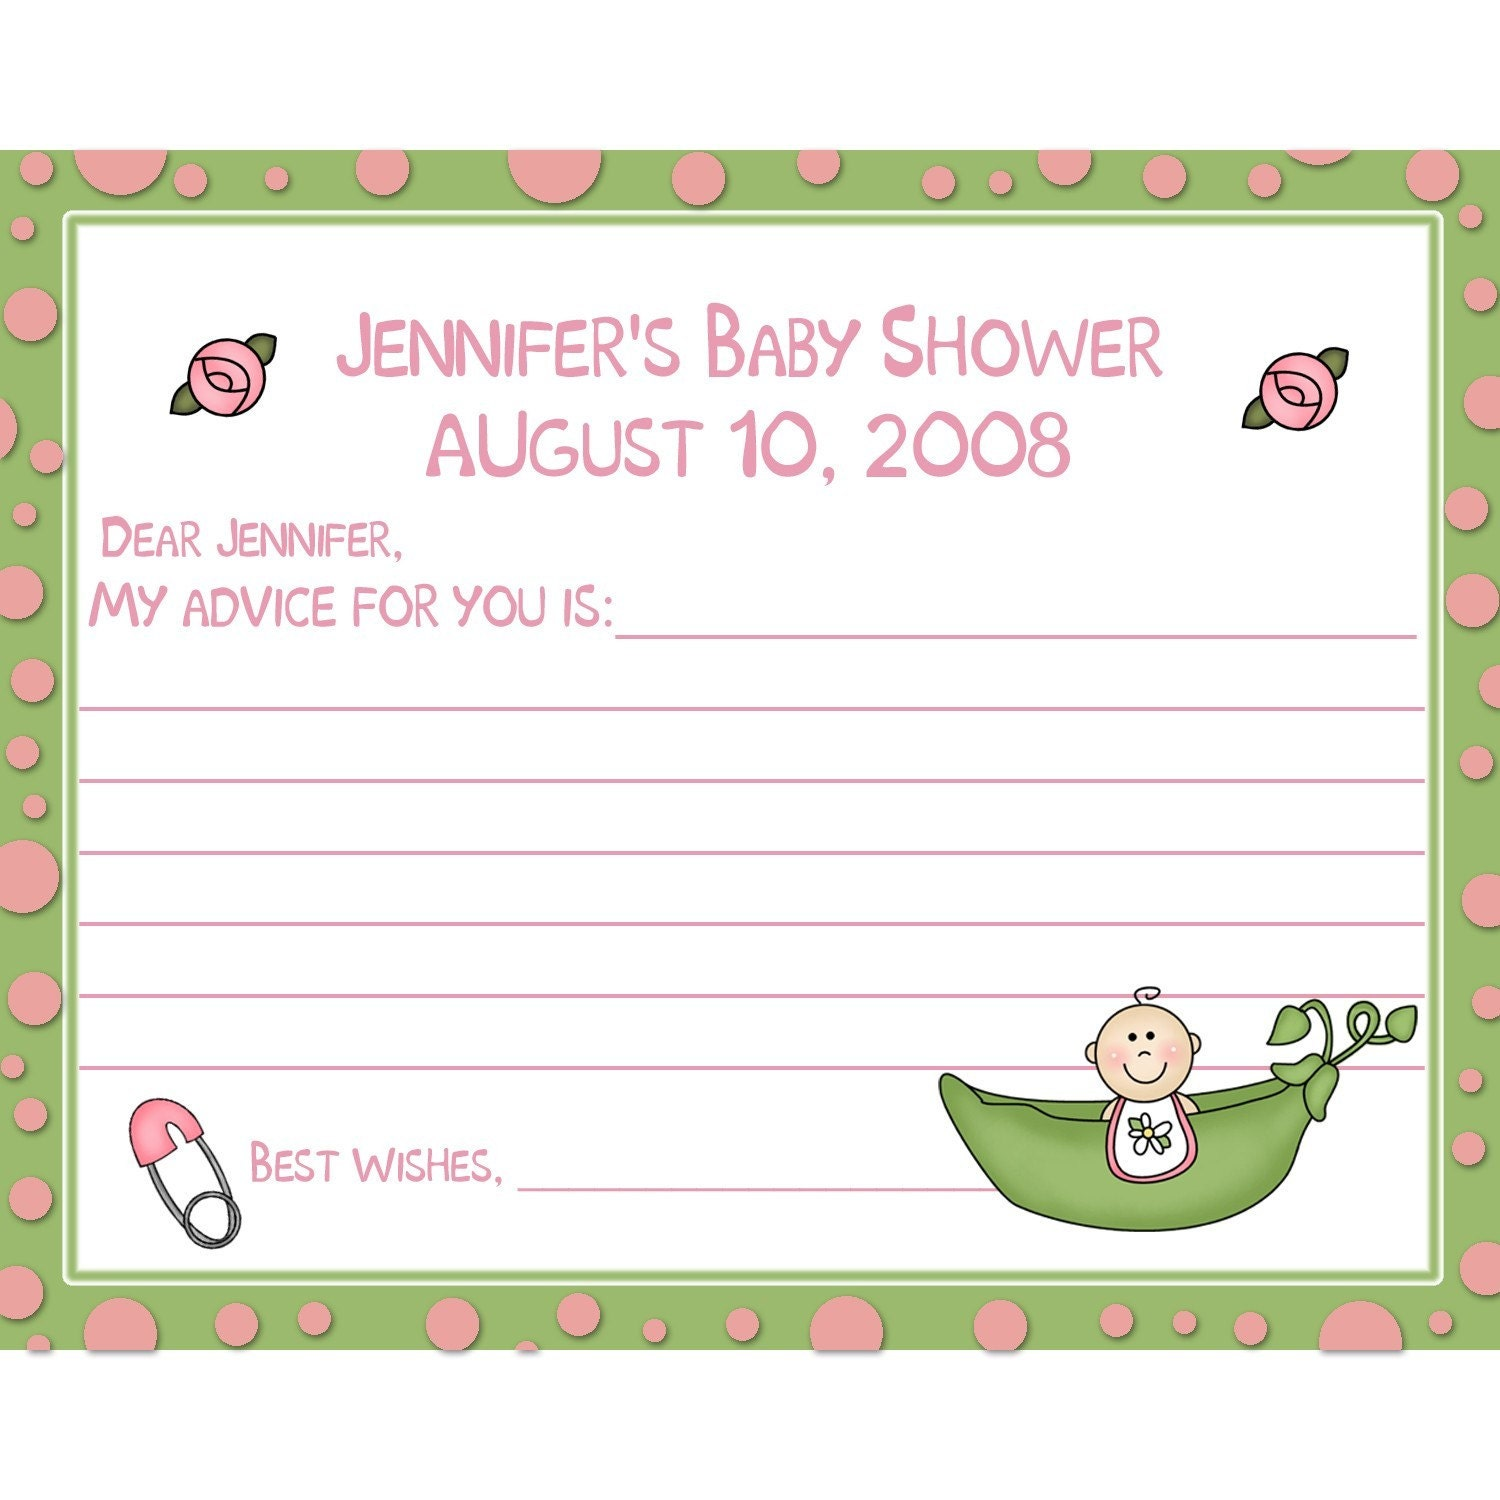 Baby Shower Tips For New Moms: 24 Baby Shower Advice Cards Sweet Pea